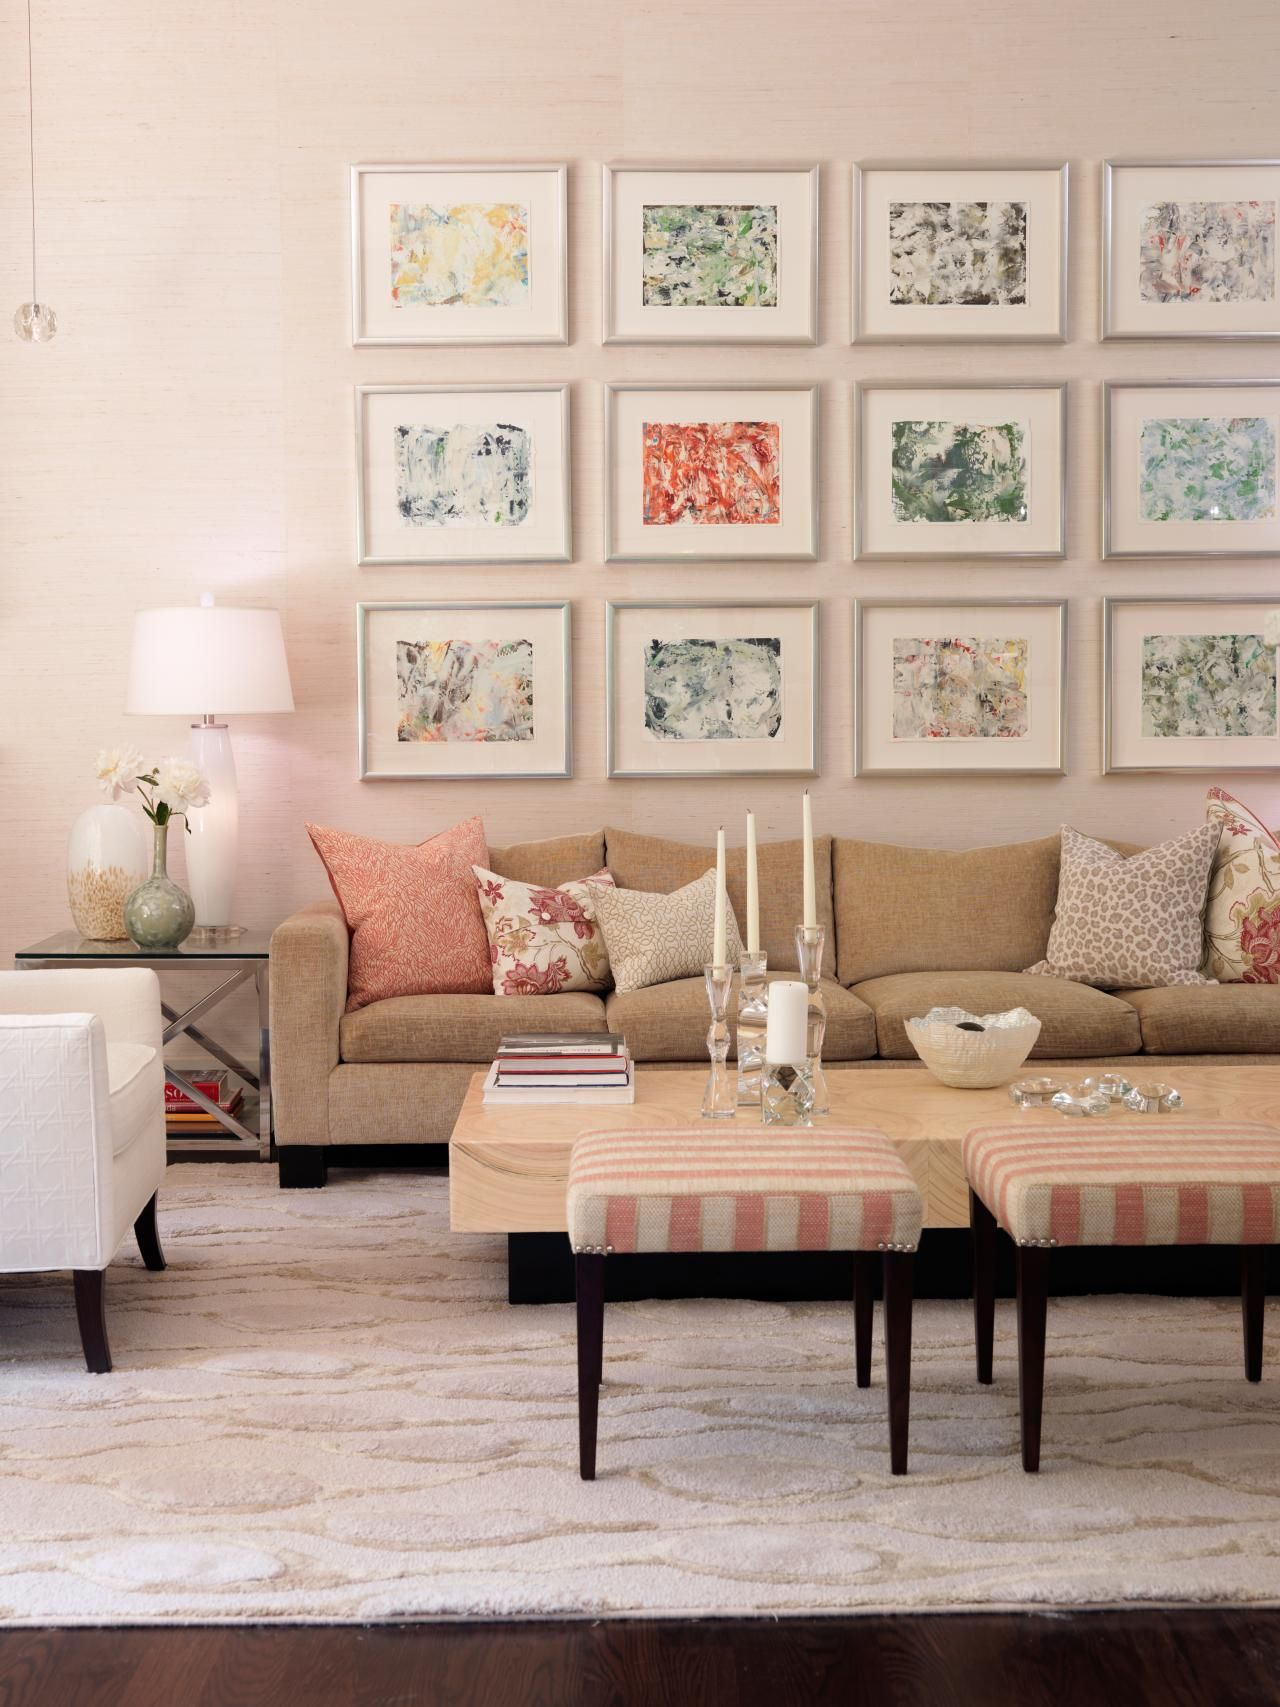 7 furniture arrangement tips small living room furniture on family picture wall ideas for living room furniture arrangements id=17034